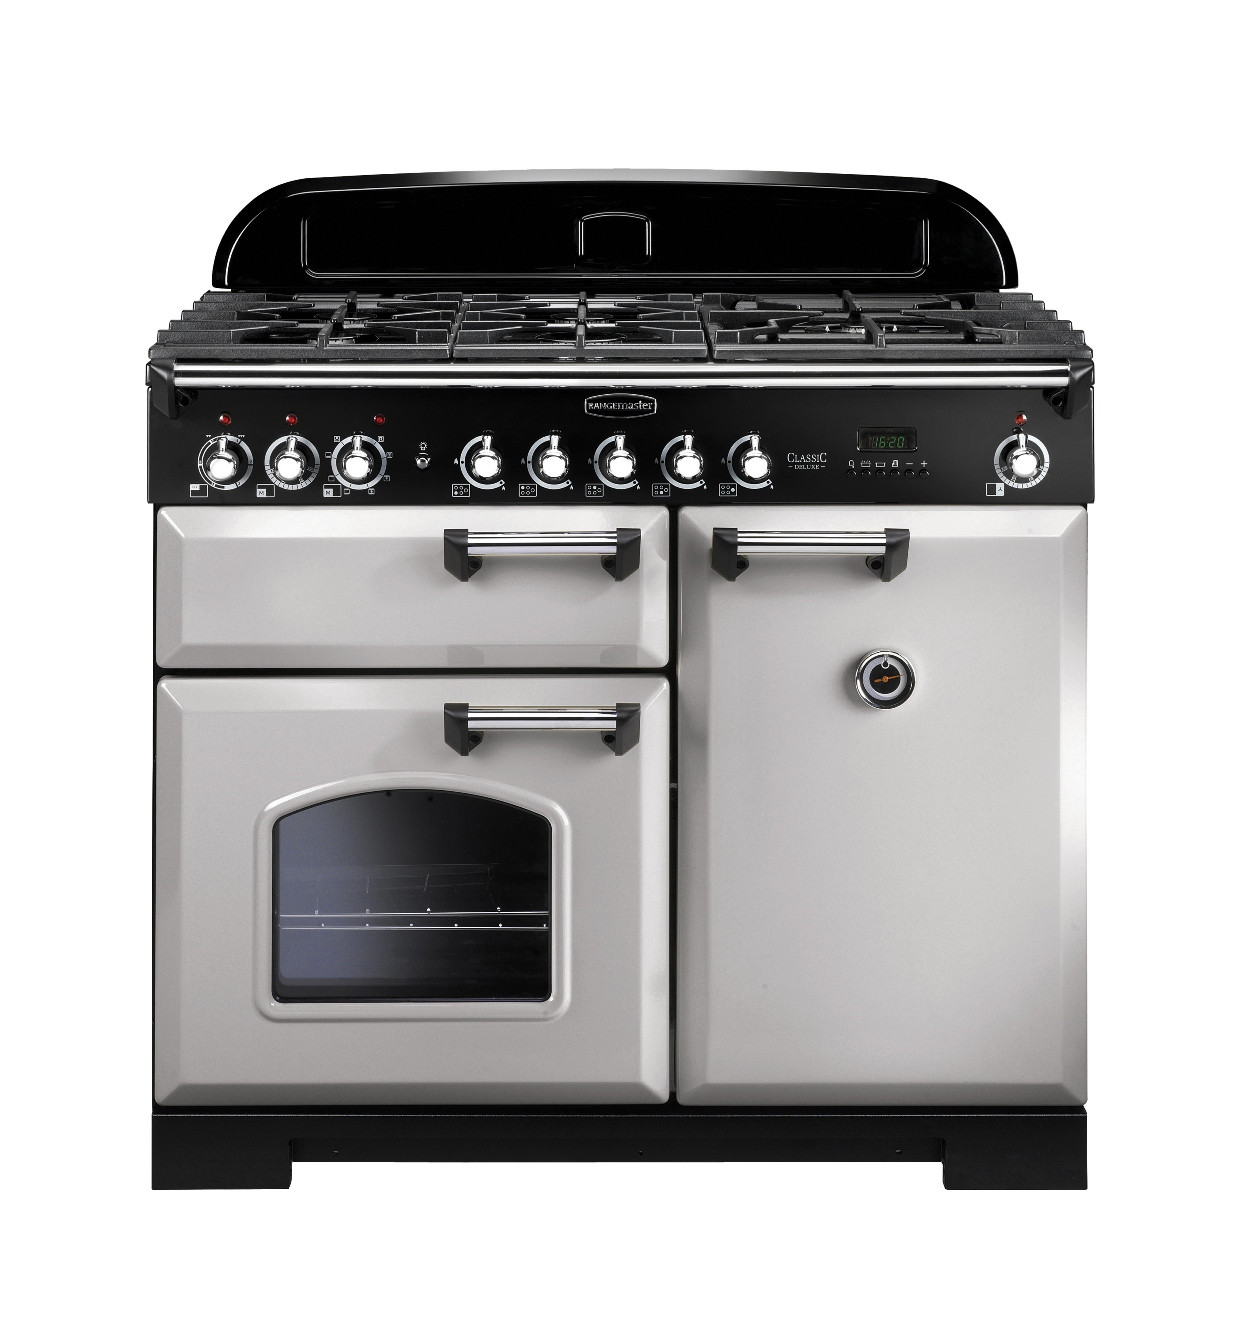 Rangemaster Classic Deluxe 100 Dual Fuel Royal Pearl Range Cooker CDL100DFFRP/C 100630